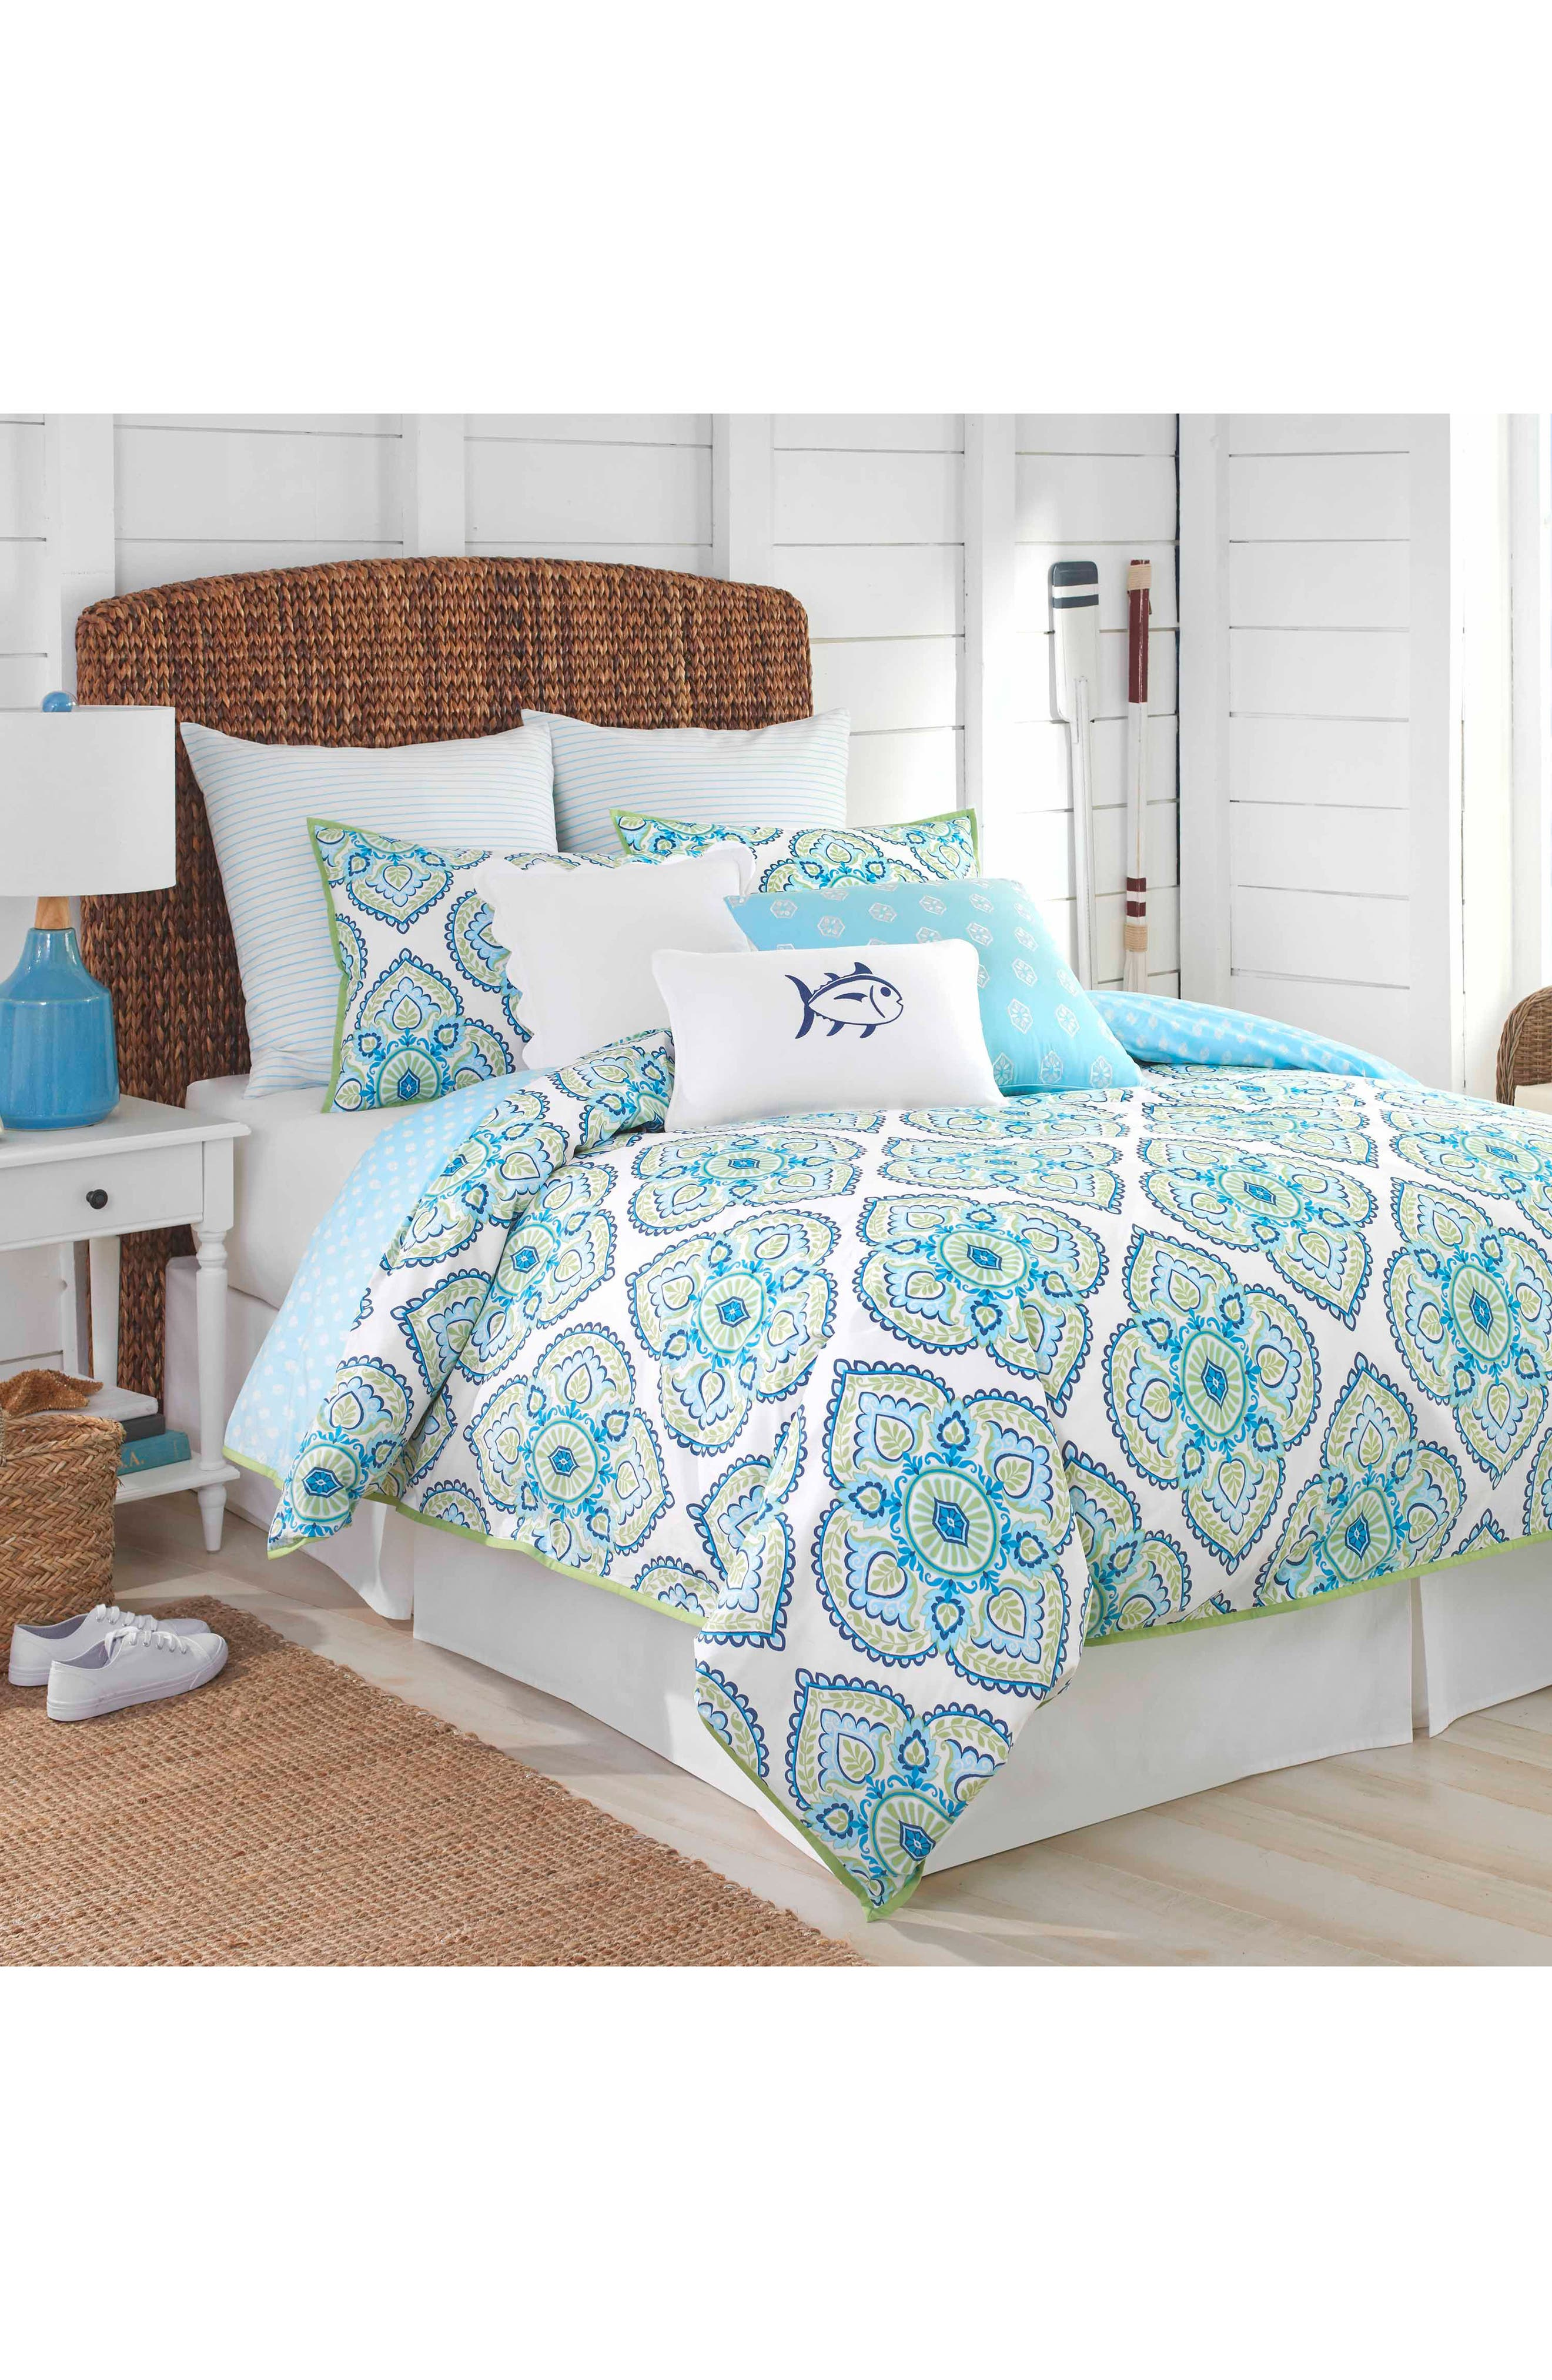 Summerville Comforter, Sham & Bed Skirt Set,                             Main thumbnail 1, color,                             Blue/ Multi